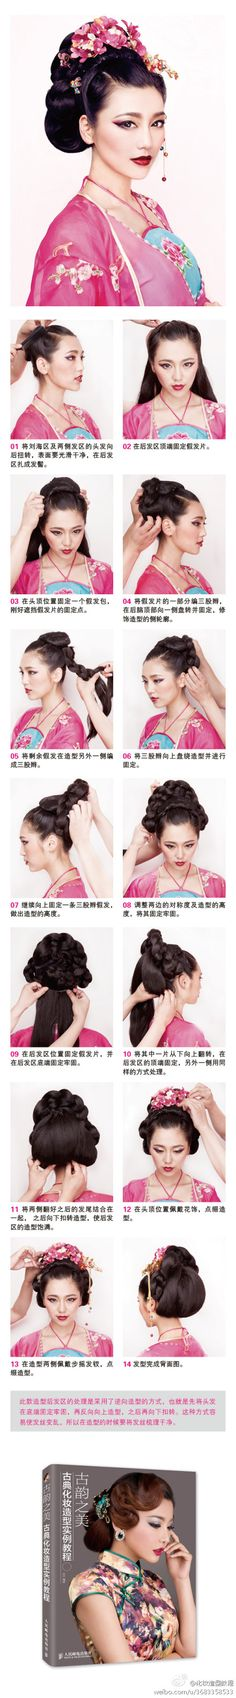 Wedding hairstyles asian hair bridal updo new Ideas - Trend Hair Makeup And Outfit 2019 Medium Hair Styles, Natural Hair Styles, Long Hair Styles, Vintage Hairstyles, Wedding Hairstyles, Chinese Hairstyles, Chinese Makeup, Historical Hairstyles, Traditional Hairstyle